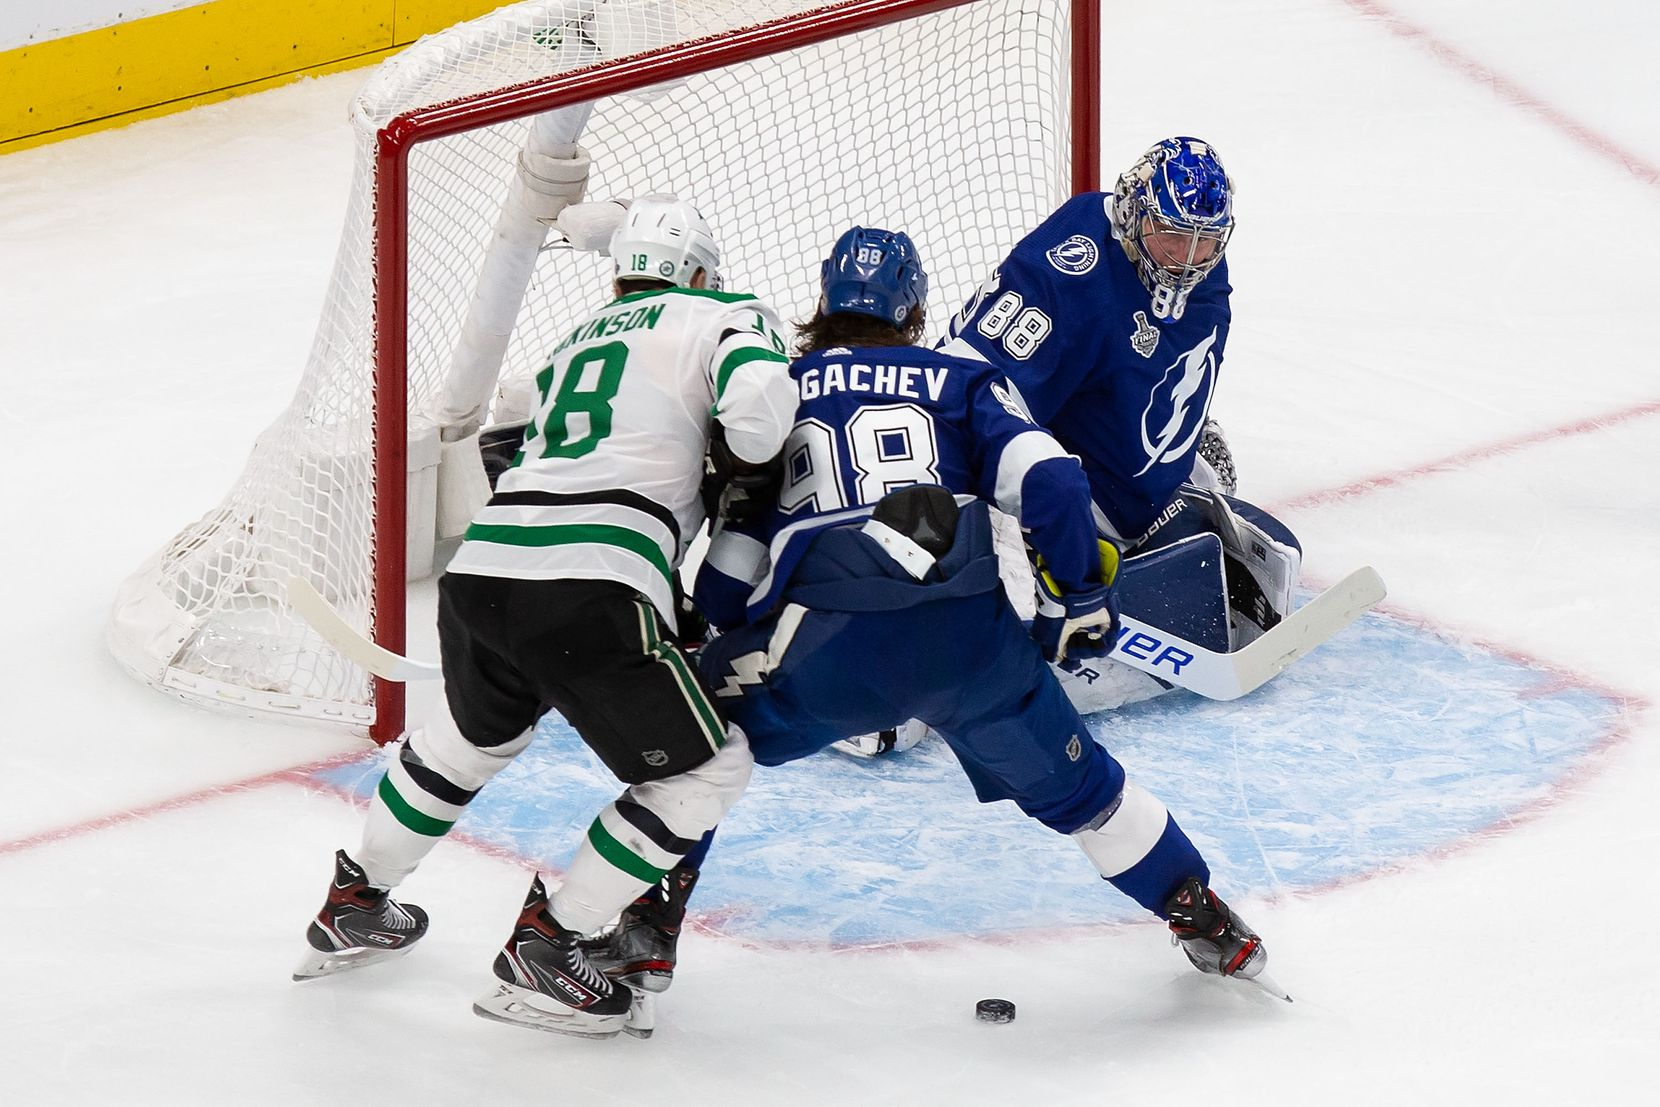 Jason Dickinson (18) of the Dallas Stars battles against Mikhail Sergachev (98) and goaltender Andrei Vasilevskiy (88) of the Tampa Bay Lightning during Game Two of the Stanley Cup Final at Rogers Place in Edmonton, Alberta, Canada on Monday, September 21, 2020. (Codie McLachlan/Special Contributor)